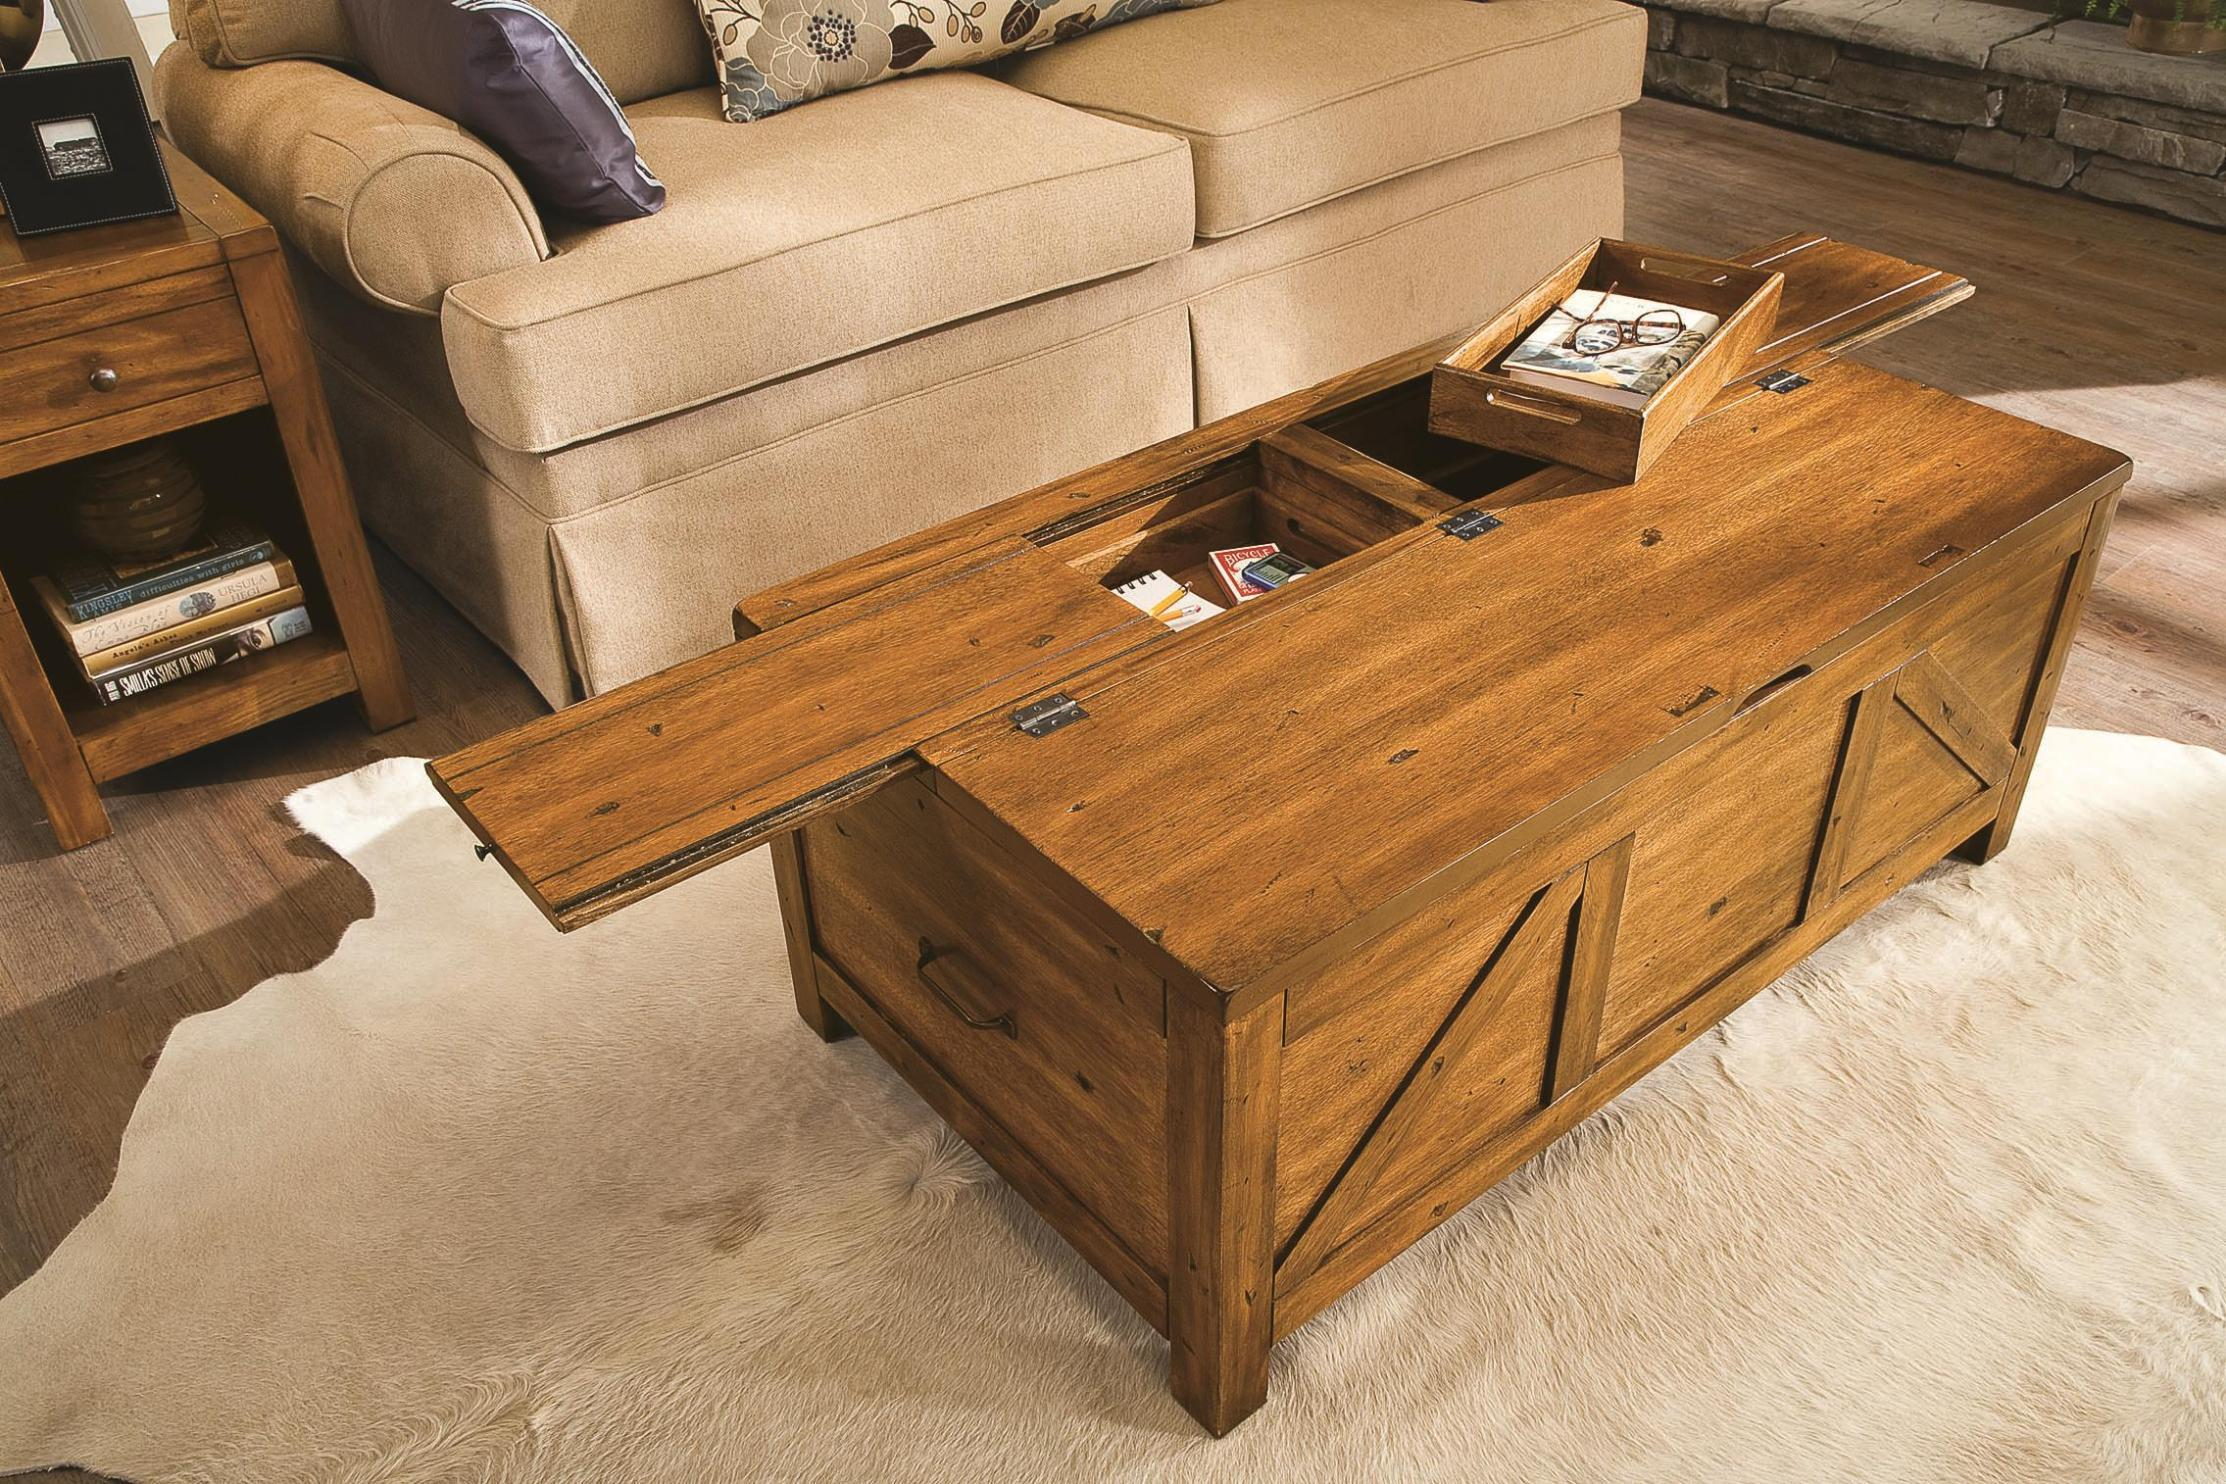 Choose Rustic Design from Wooden Coffee Table with Storage for Old Fashioned Living Room